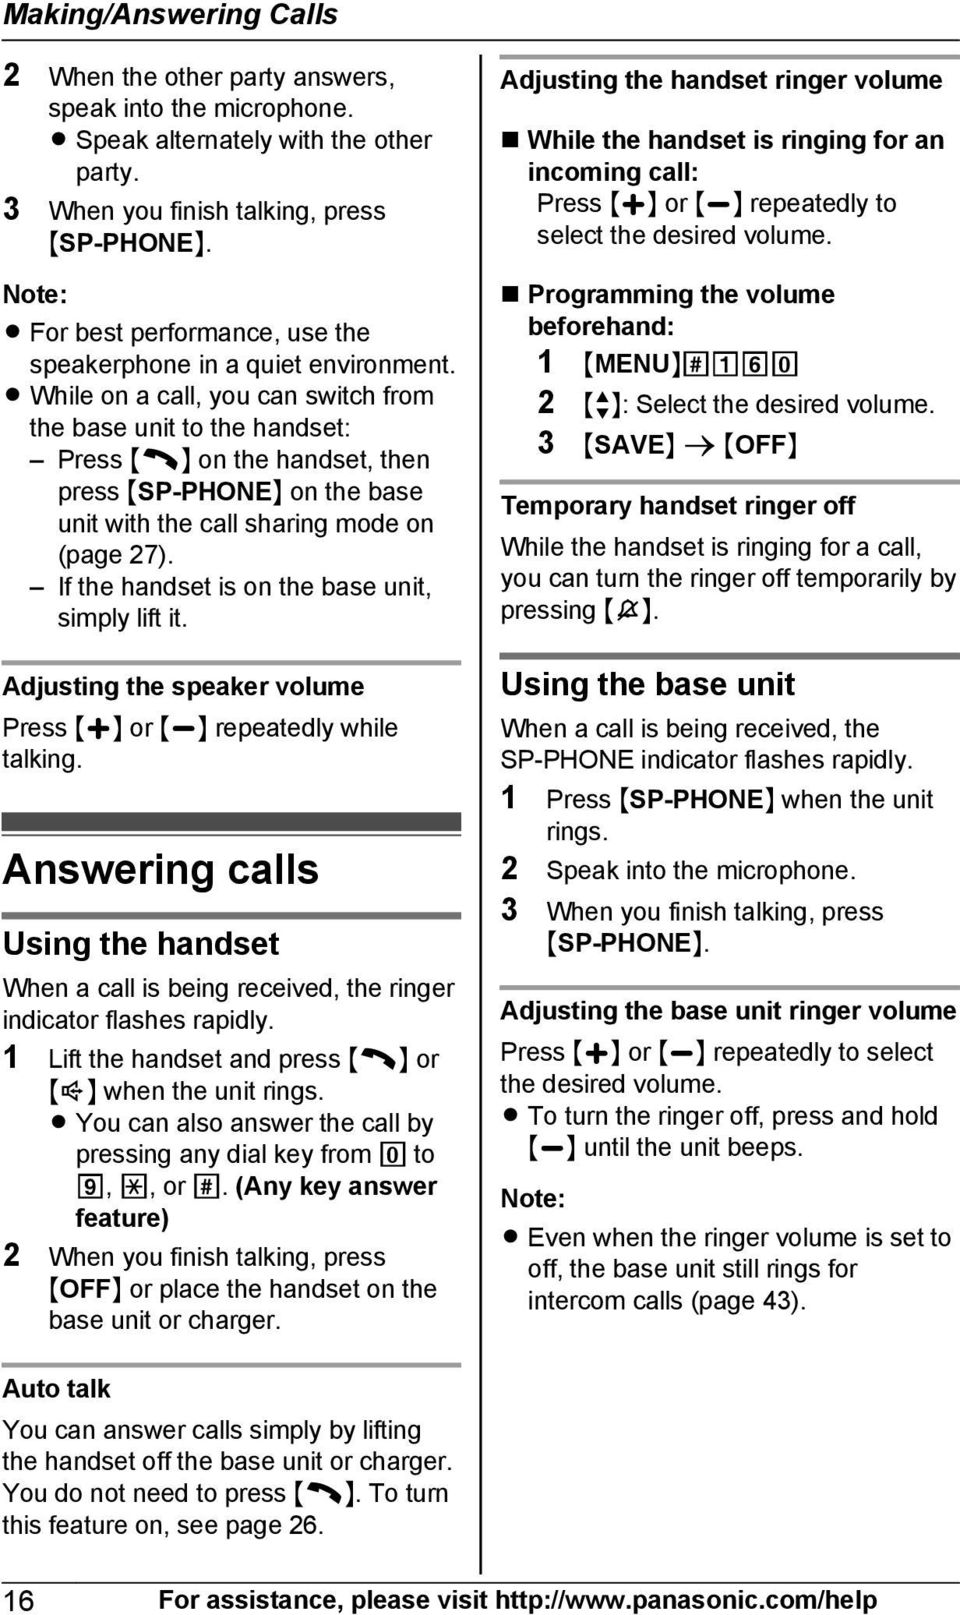 R While on a call, you can switch from the base unit to the handset: Press M N on the handset, then press MSP-PHONEN on the base unit with the call sharing mode on (page 27).